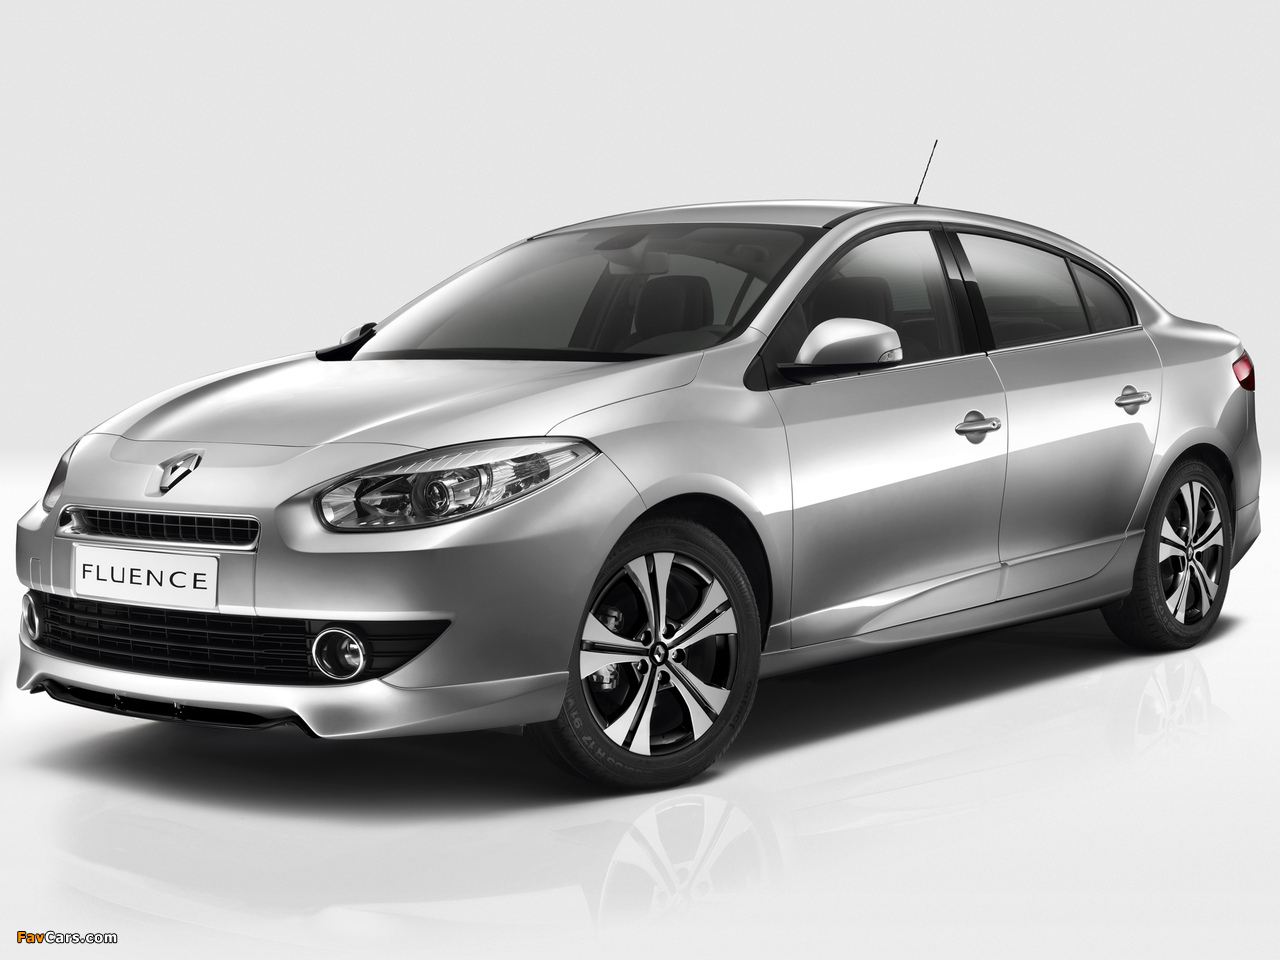 Renault Fluence Black Edition 2012 pictures (1280 x 960)